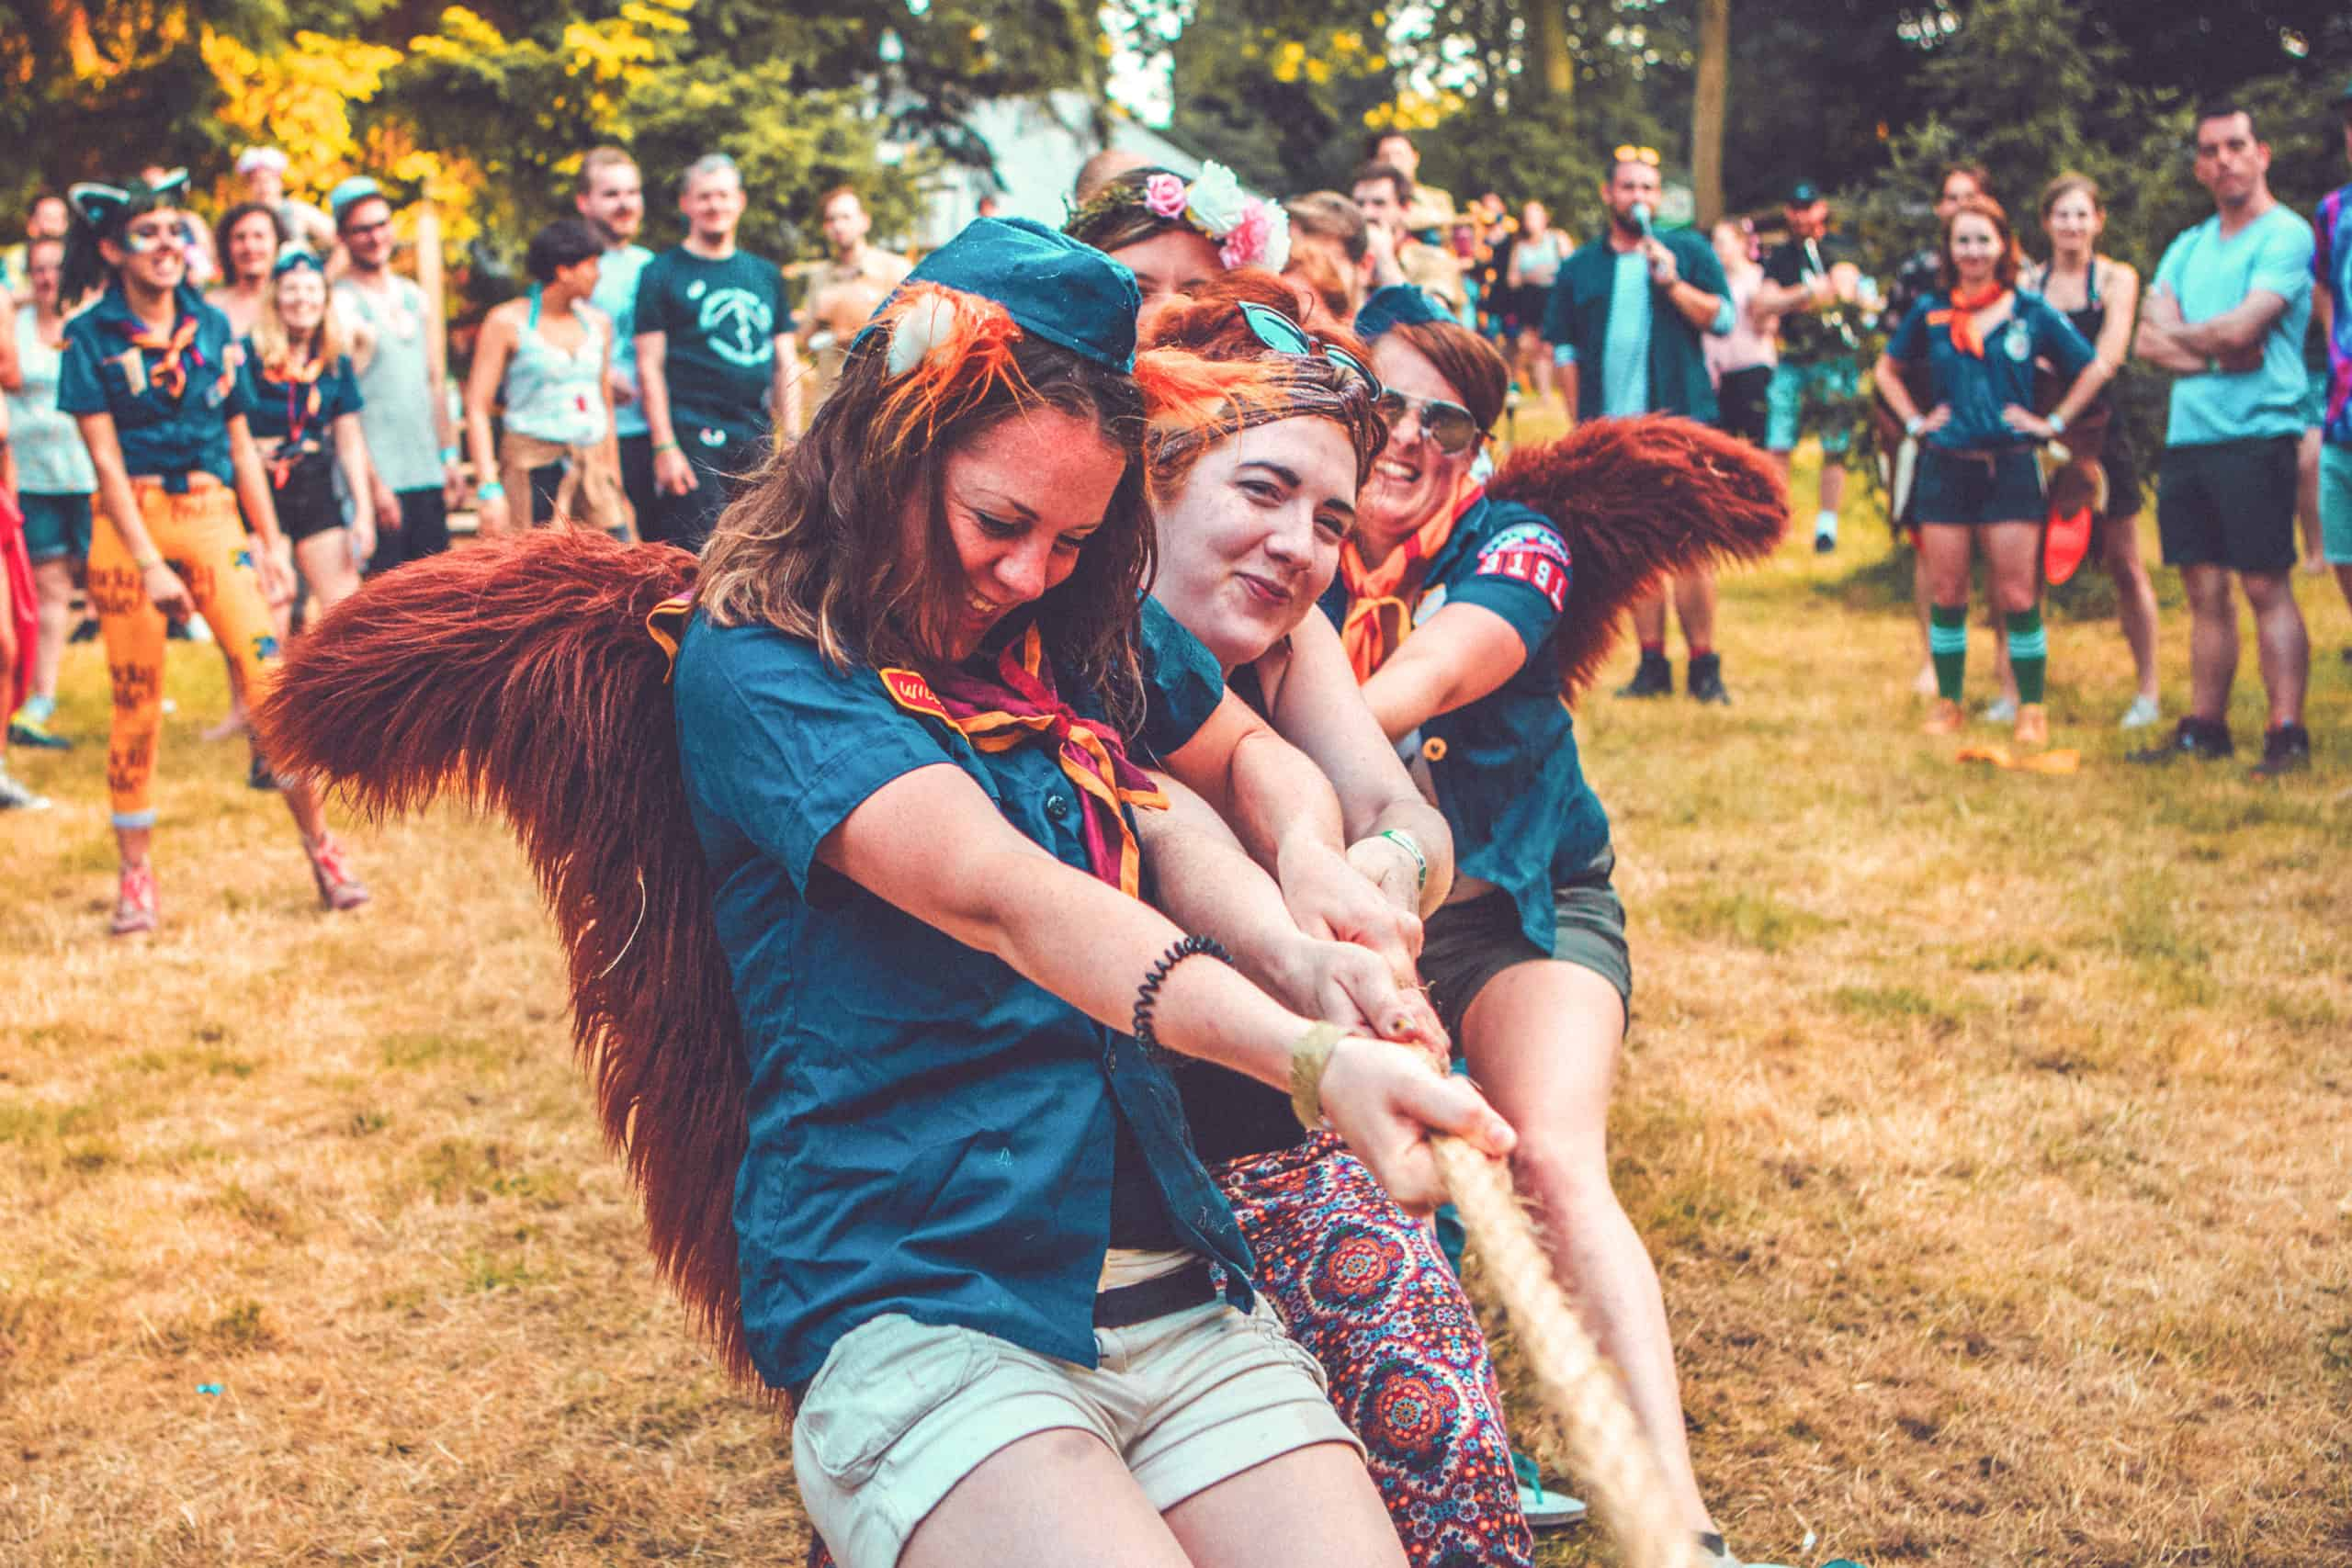 People dressed as foxes at the tug of war at Camp Wildfire. A summer weekend break in a forest near London and Kent. An outdoor woodland retreat featuring adventure activities, live music, DJs, parties and camping. Half summer adventure activity camp, half music festival, for adults only.